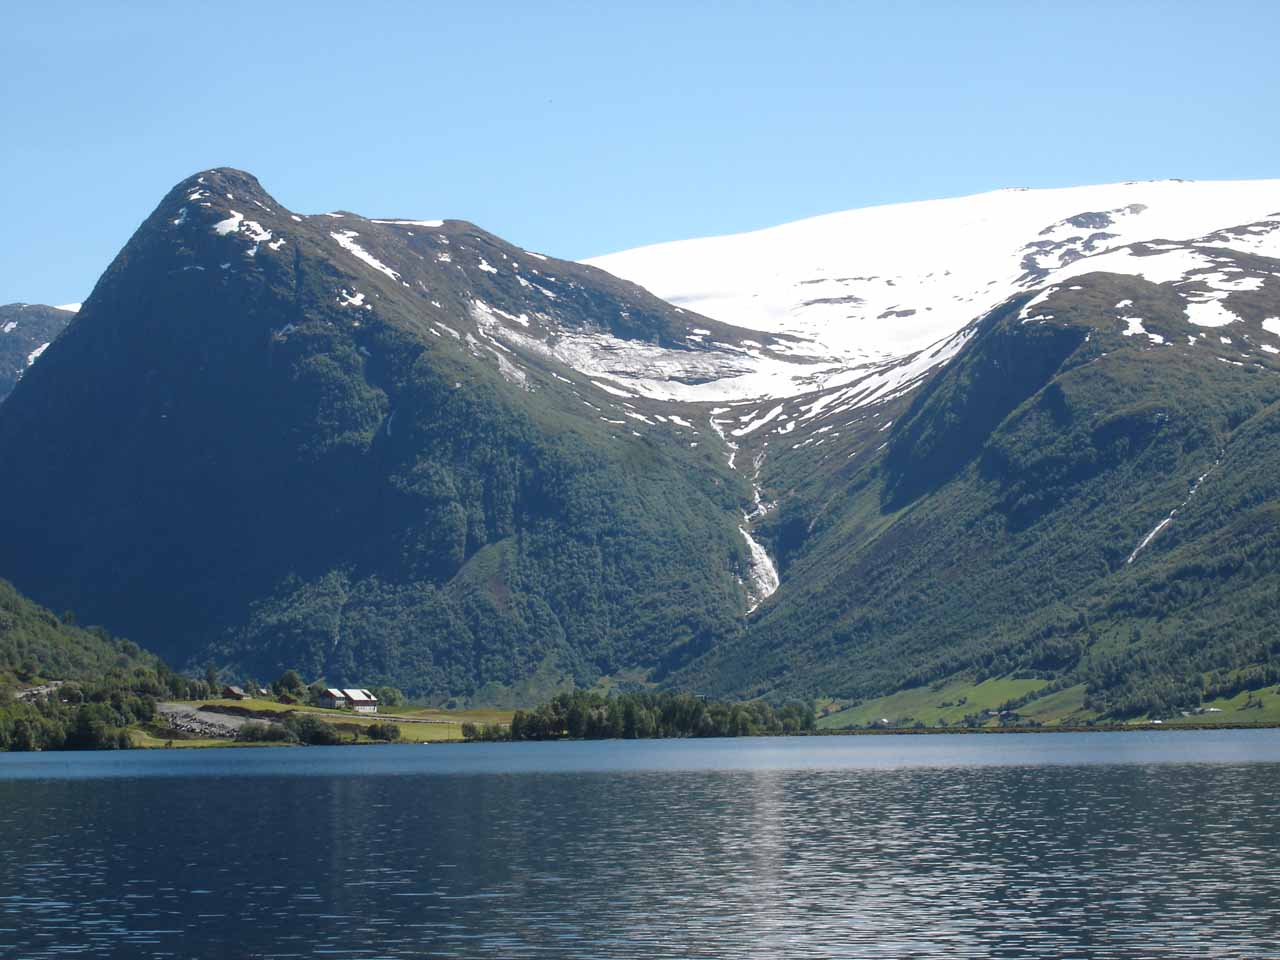 As we were done touring Waterfall Country, we then continued northwards towards Nordfjord, but that wasn't before we saw this surprise waterfall called Vikafossen behind the lake Jølstravatnet